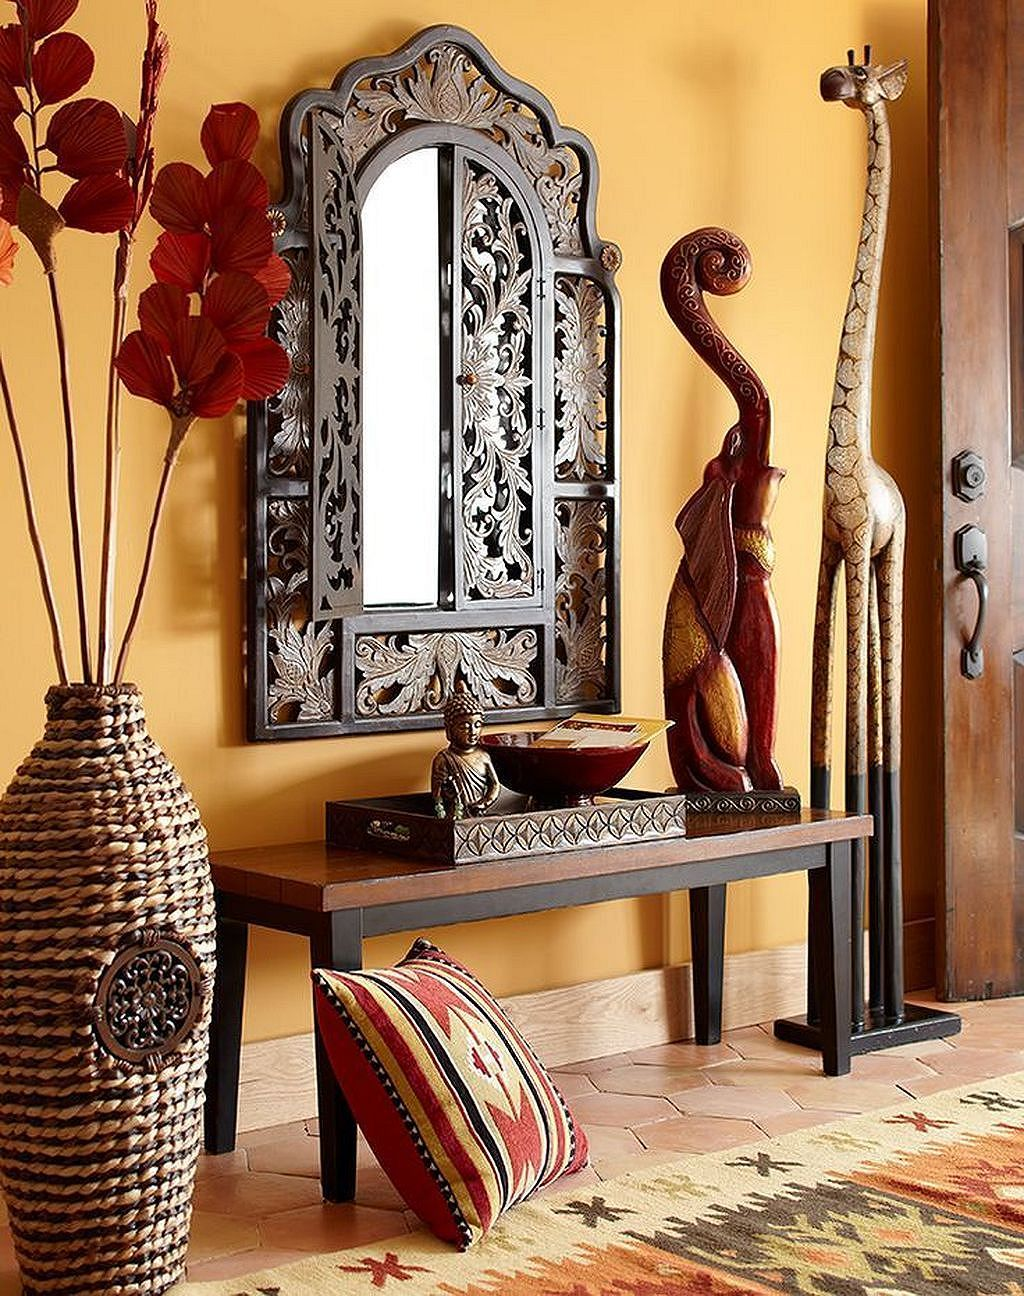 7+ Creative Modern Decor with Afrocentric African Style Ideas